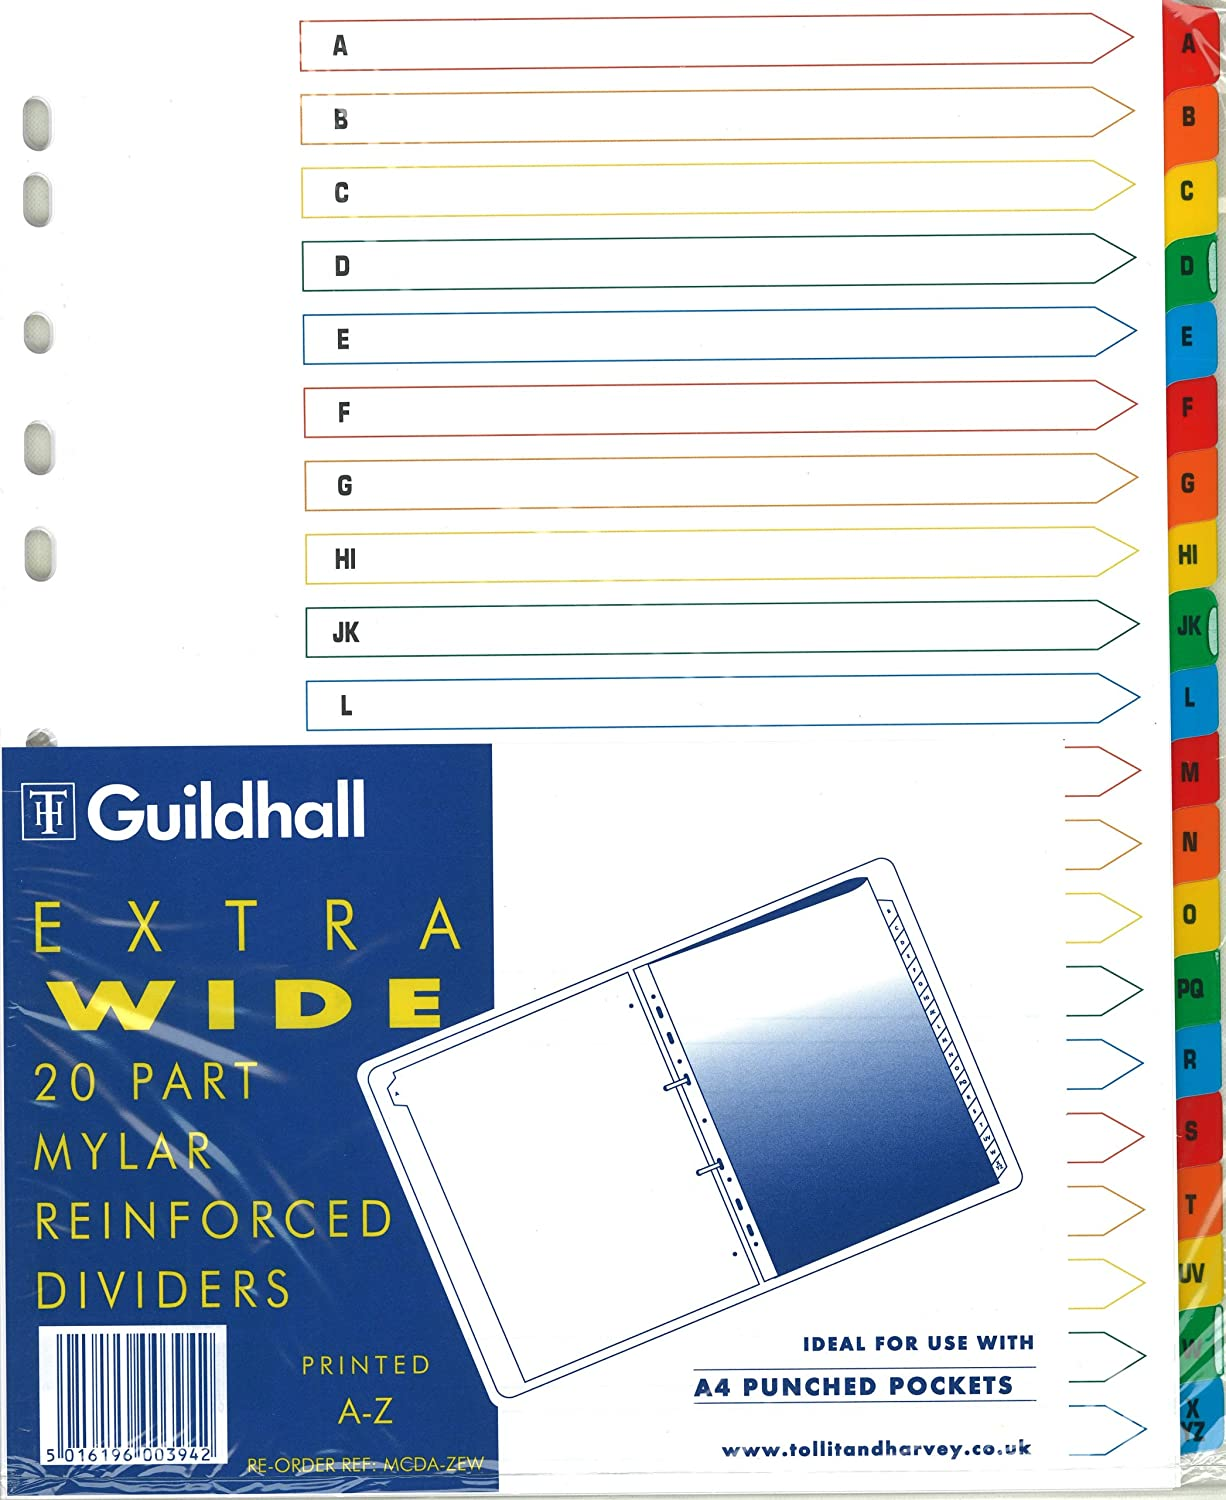 Guildhall A4 Extra Wide Mylar Reinforced A to Z Dividers For Ringbinders